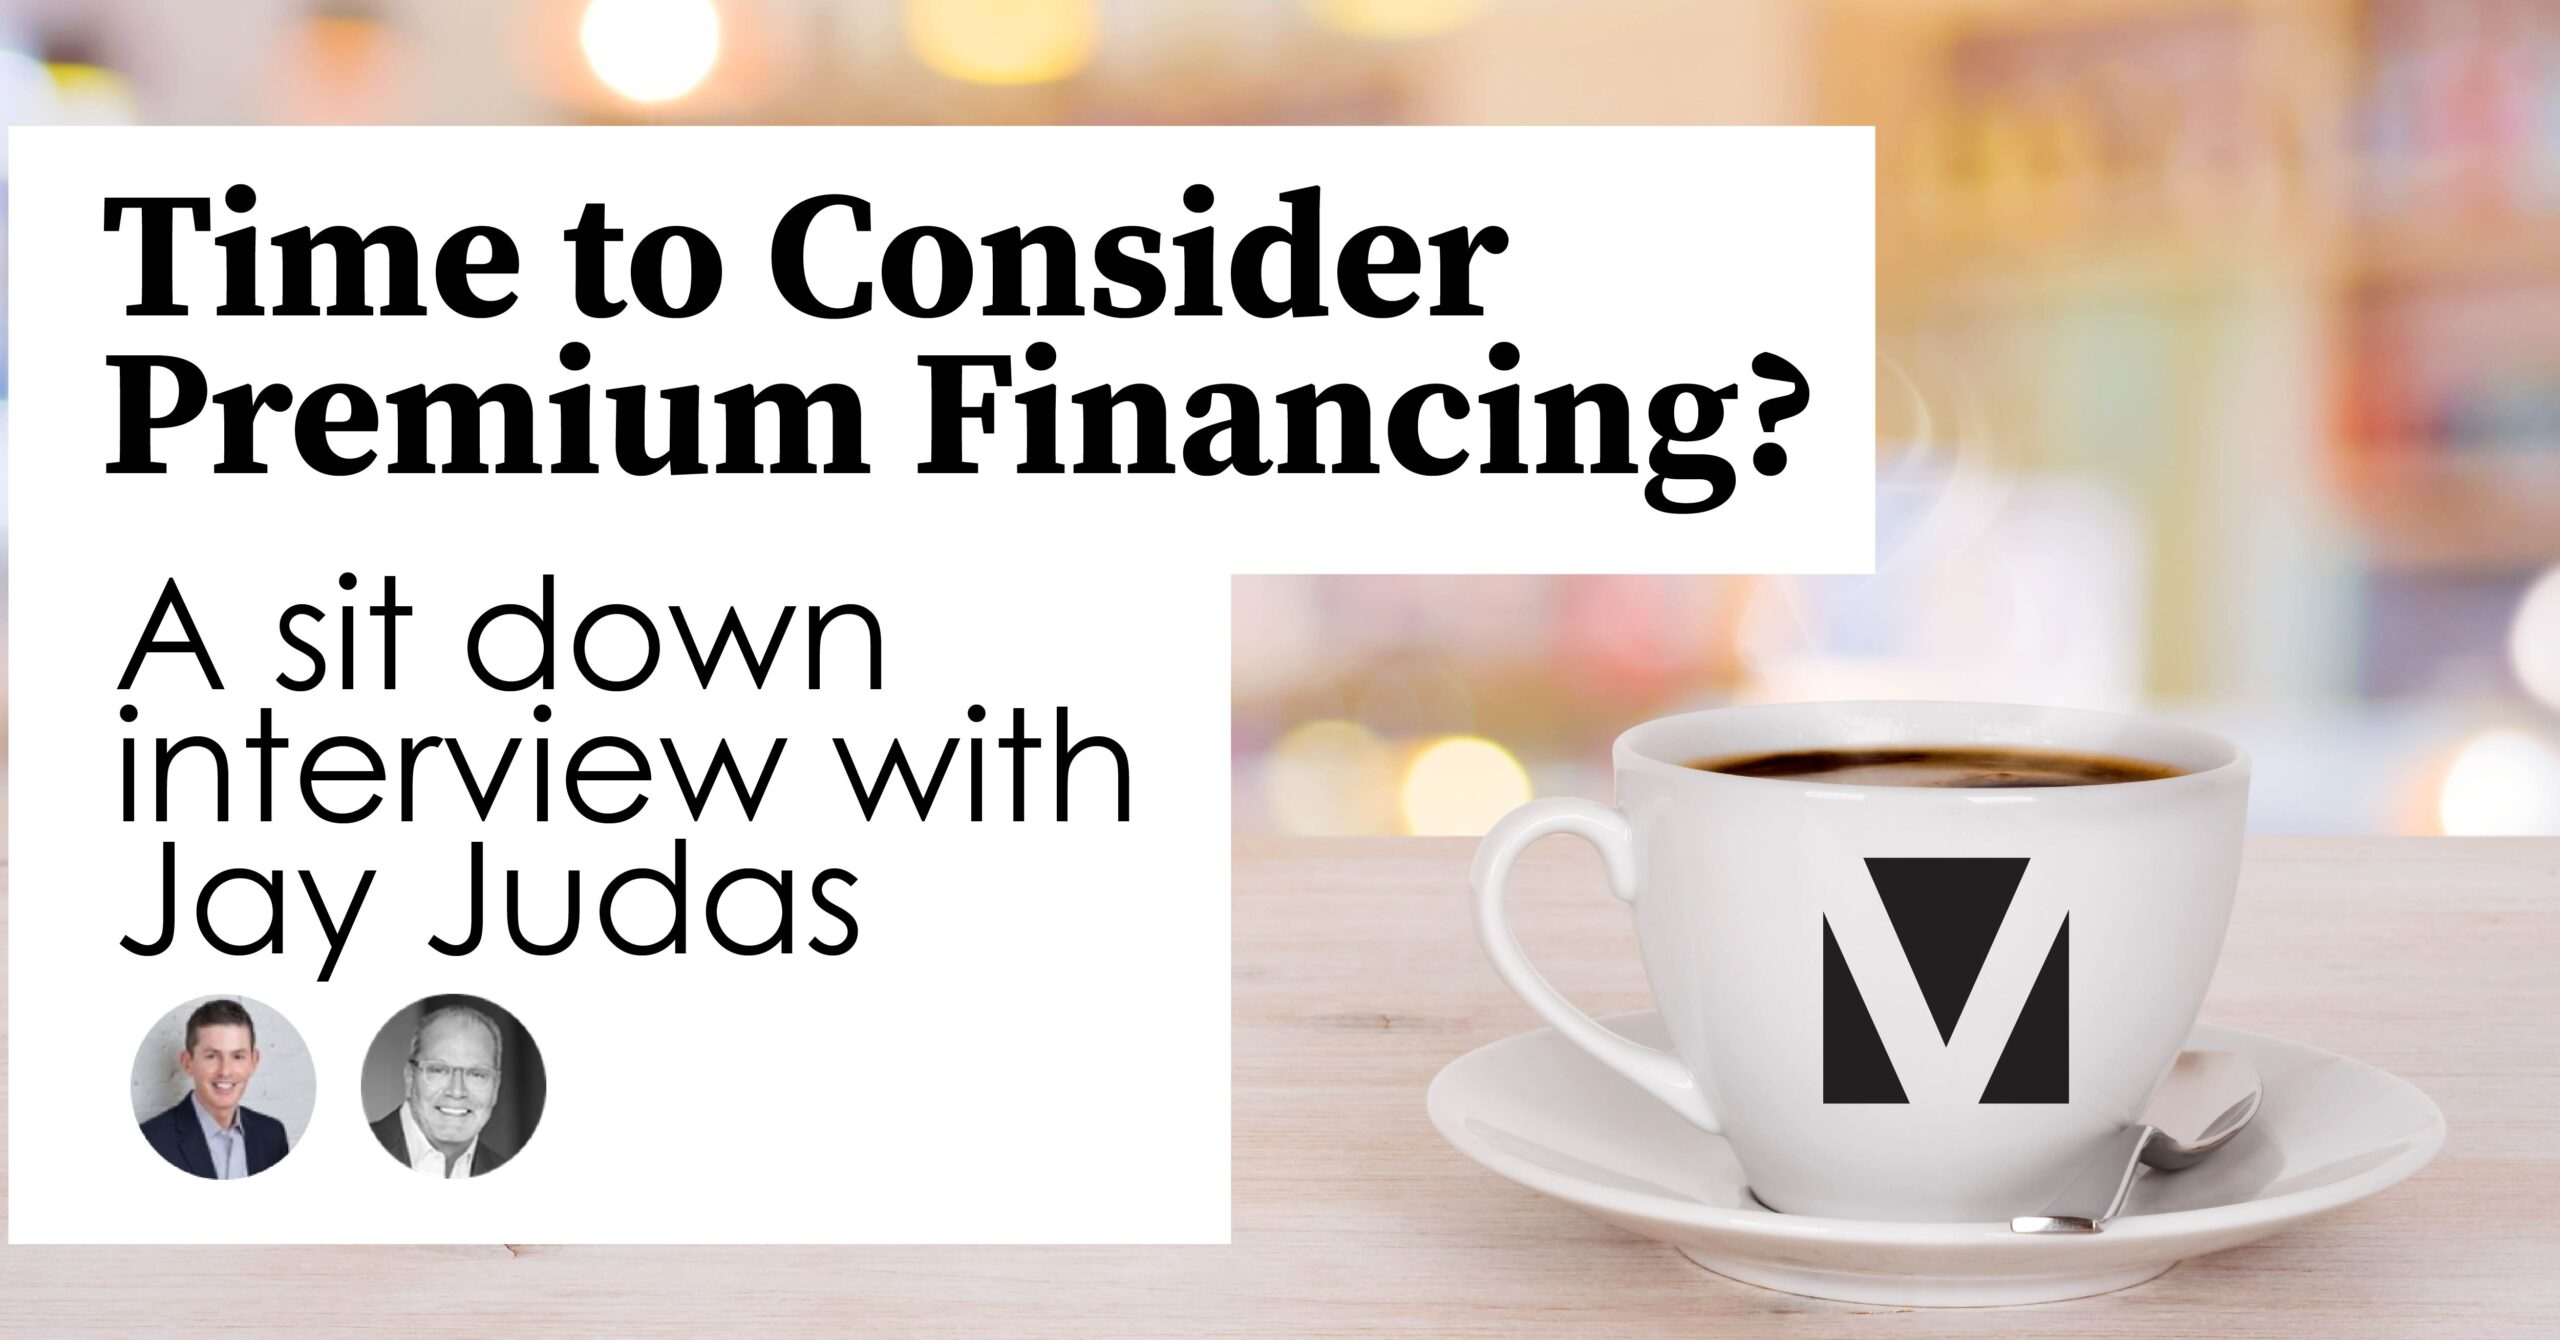 Time To Consider Premium Financing?